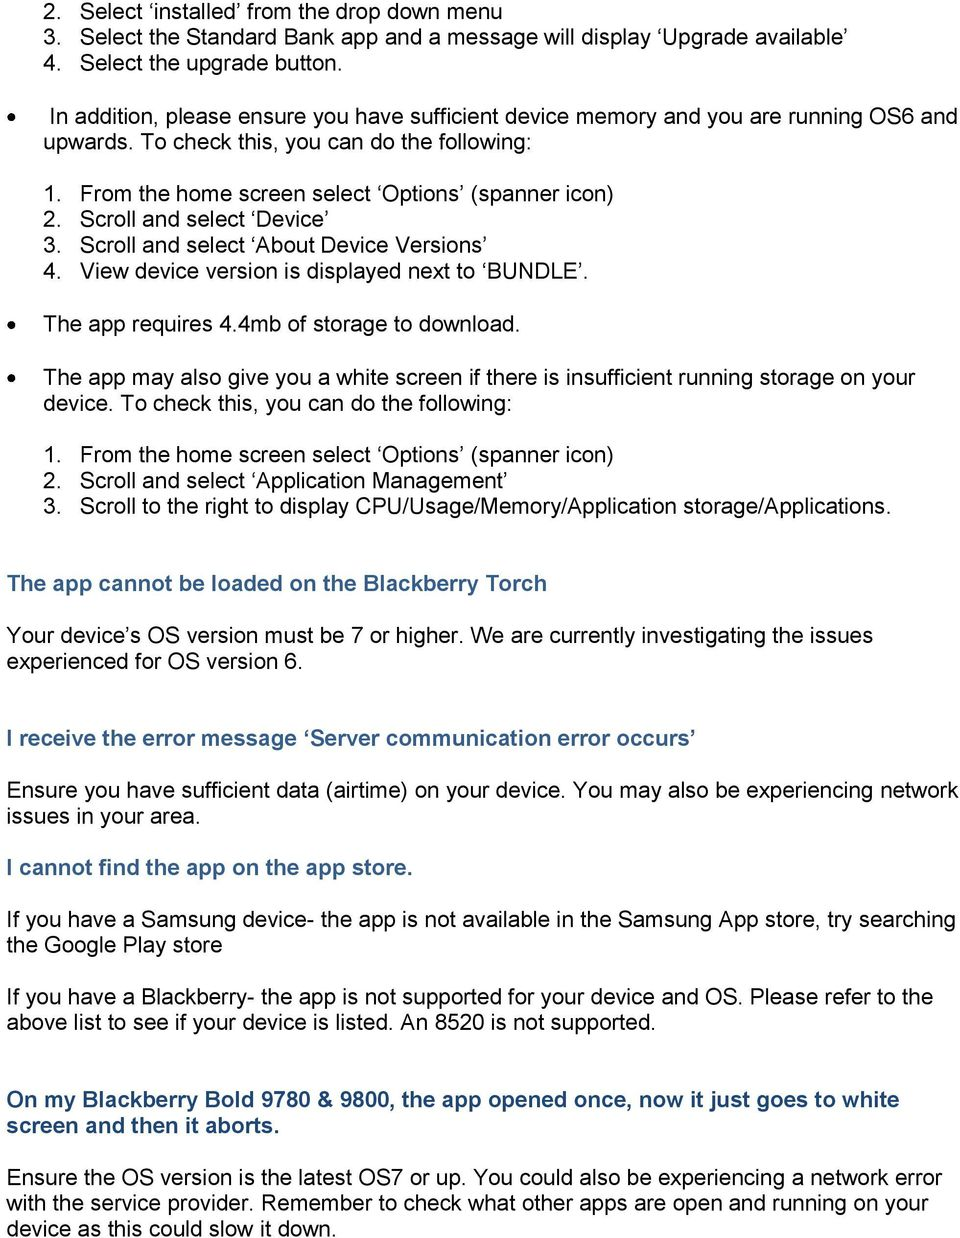 Standard Bank Mobile Banking Frequently Asked Questions FAQ